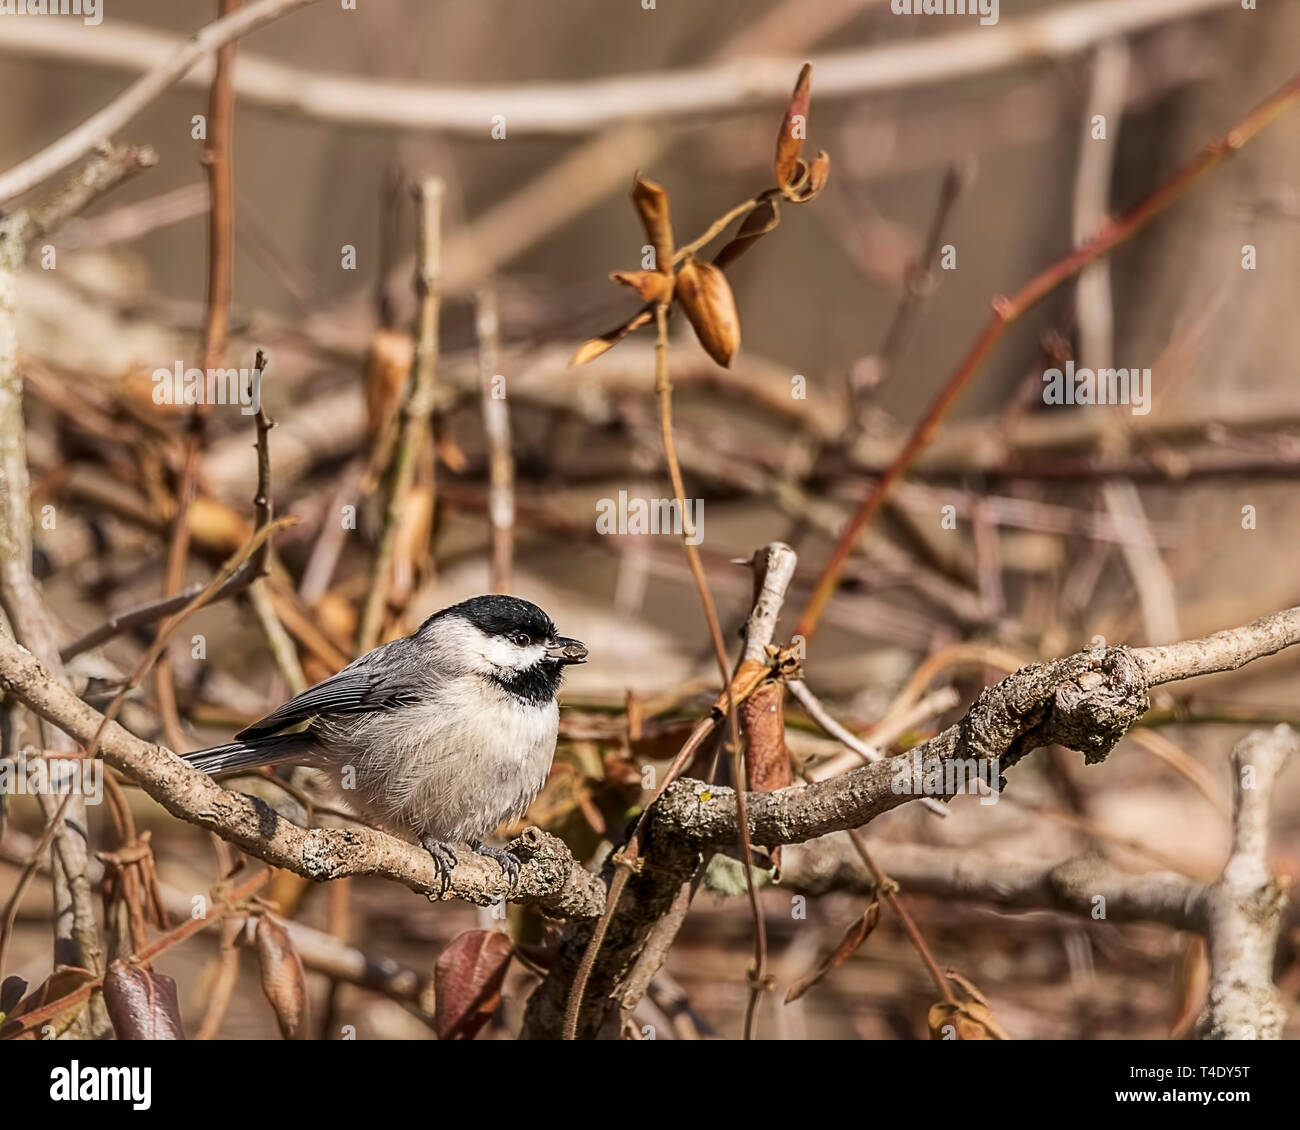 A beautiful Carolina chickadee perched in the brambles. - Stock Image